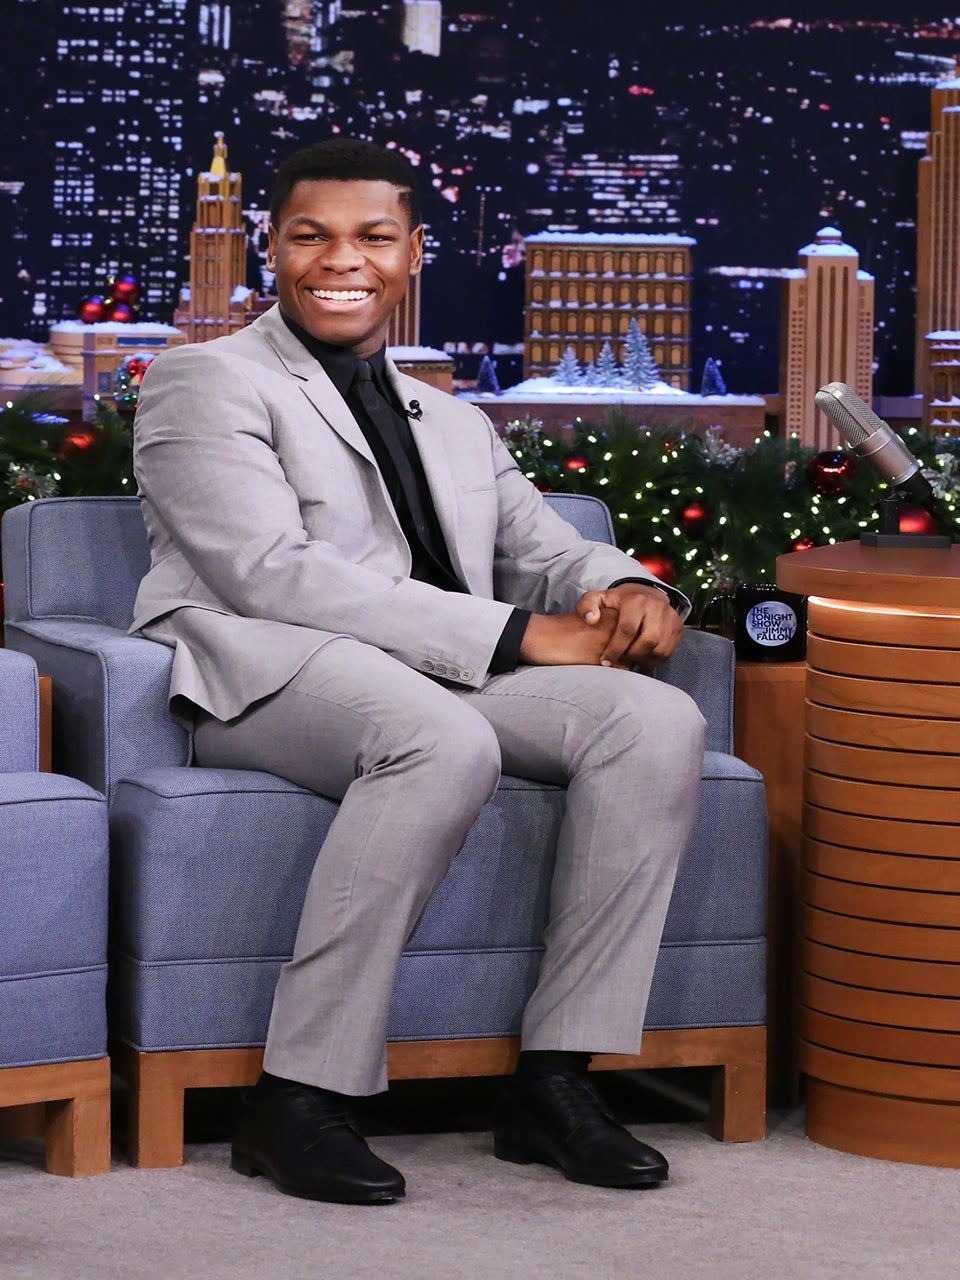 'Star Wars: The Force Awakens' Star John Boyega Says His Friends Thought He Was An Extra